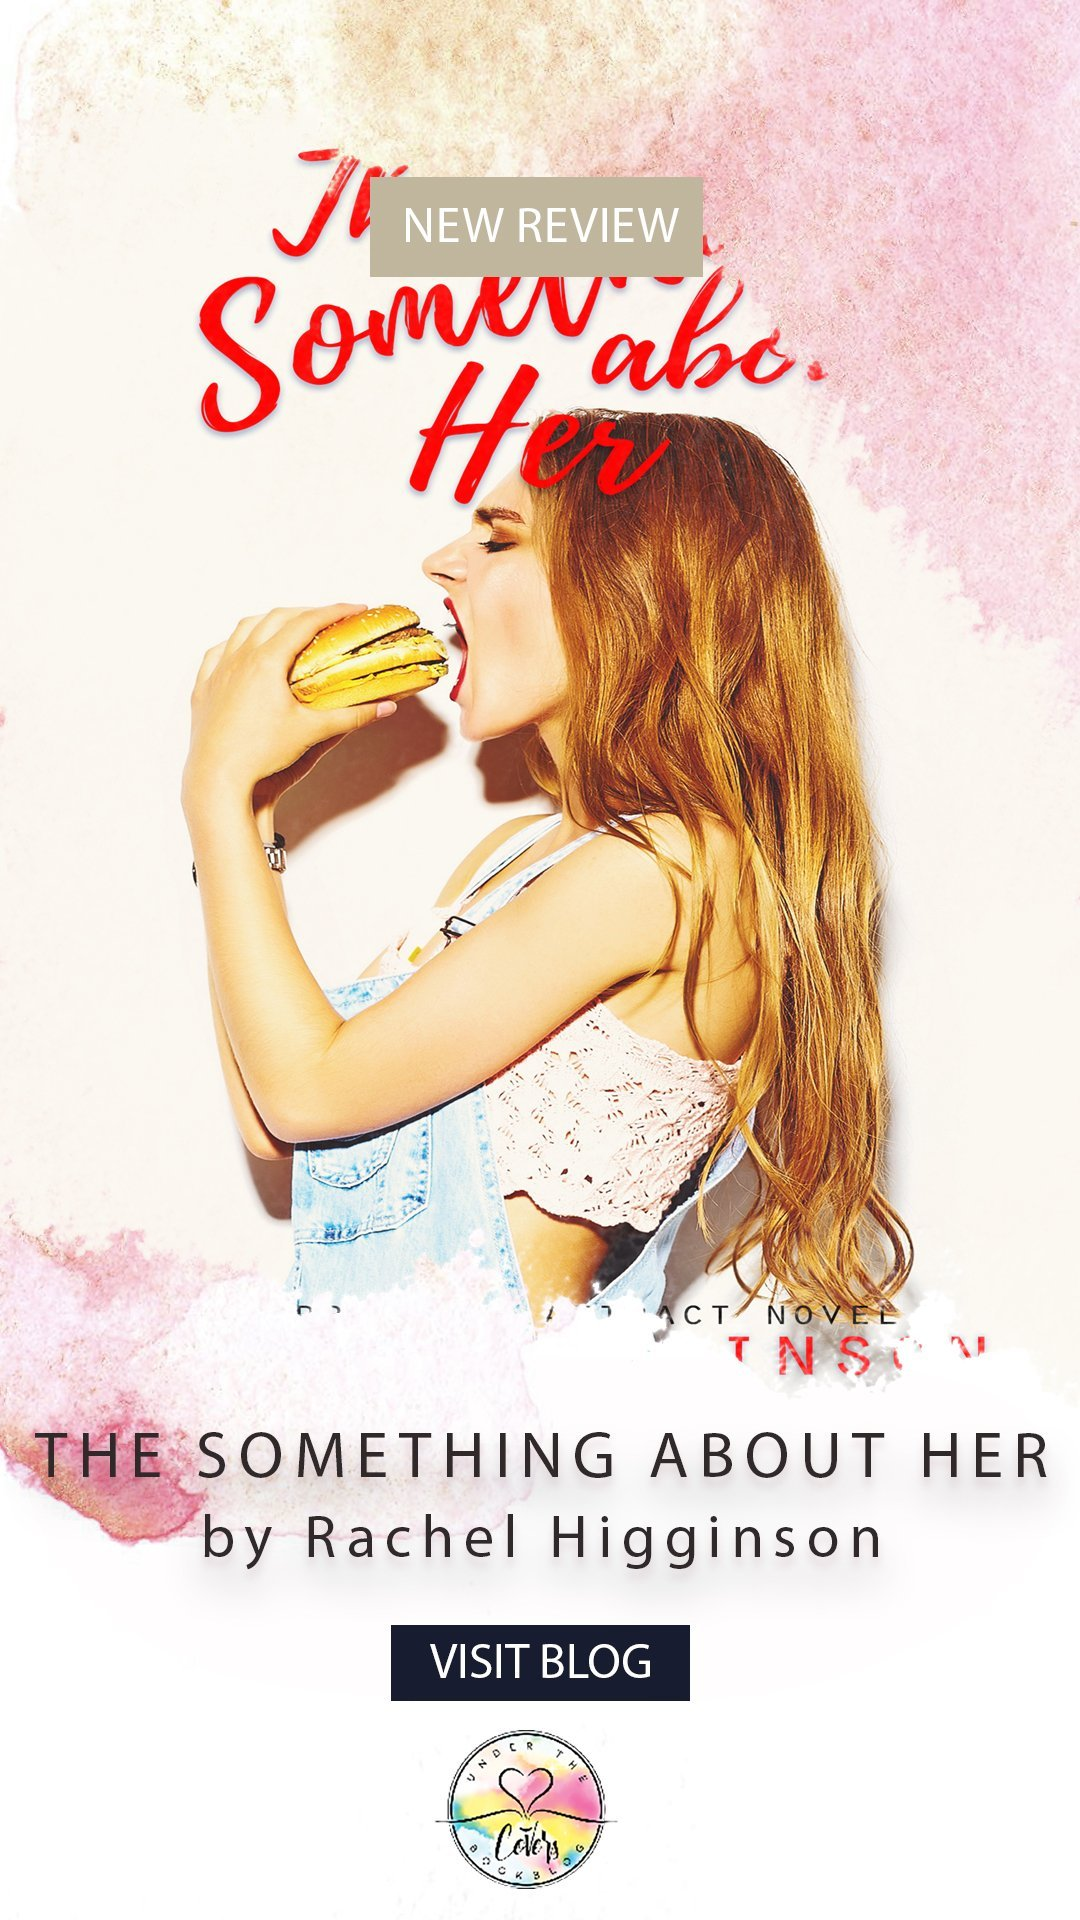 ARC Review: The Something About Her by Rachel Higginson